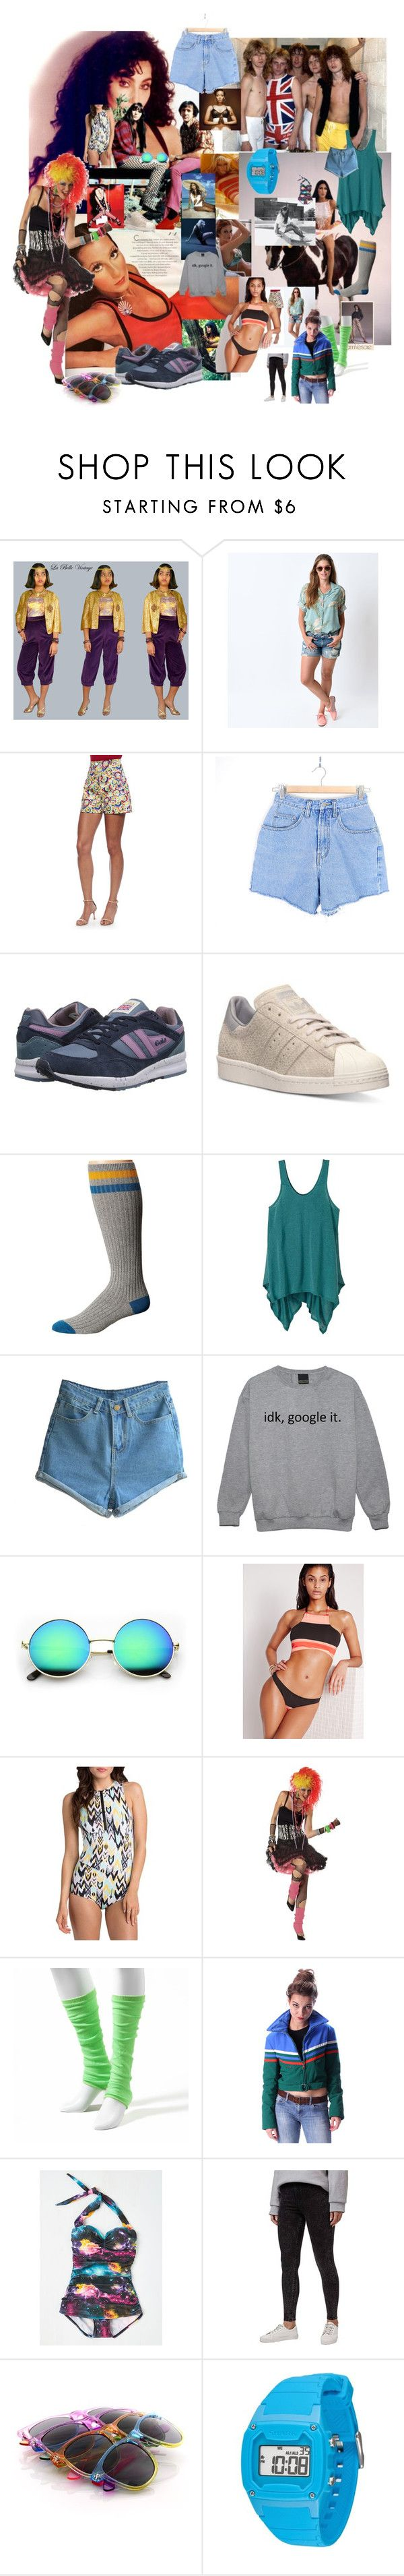 """Untitled #34"" by xaxa-szasza on Polyvore featuring Versace, Carolina Herrera, Gola, adidas, Volcom, prAna, Missguided, Billabong, Esther Williams and Topshop"